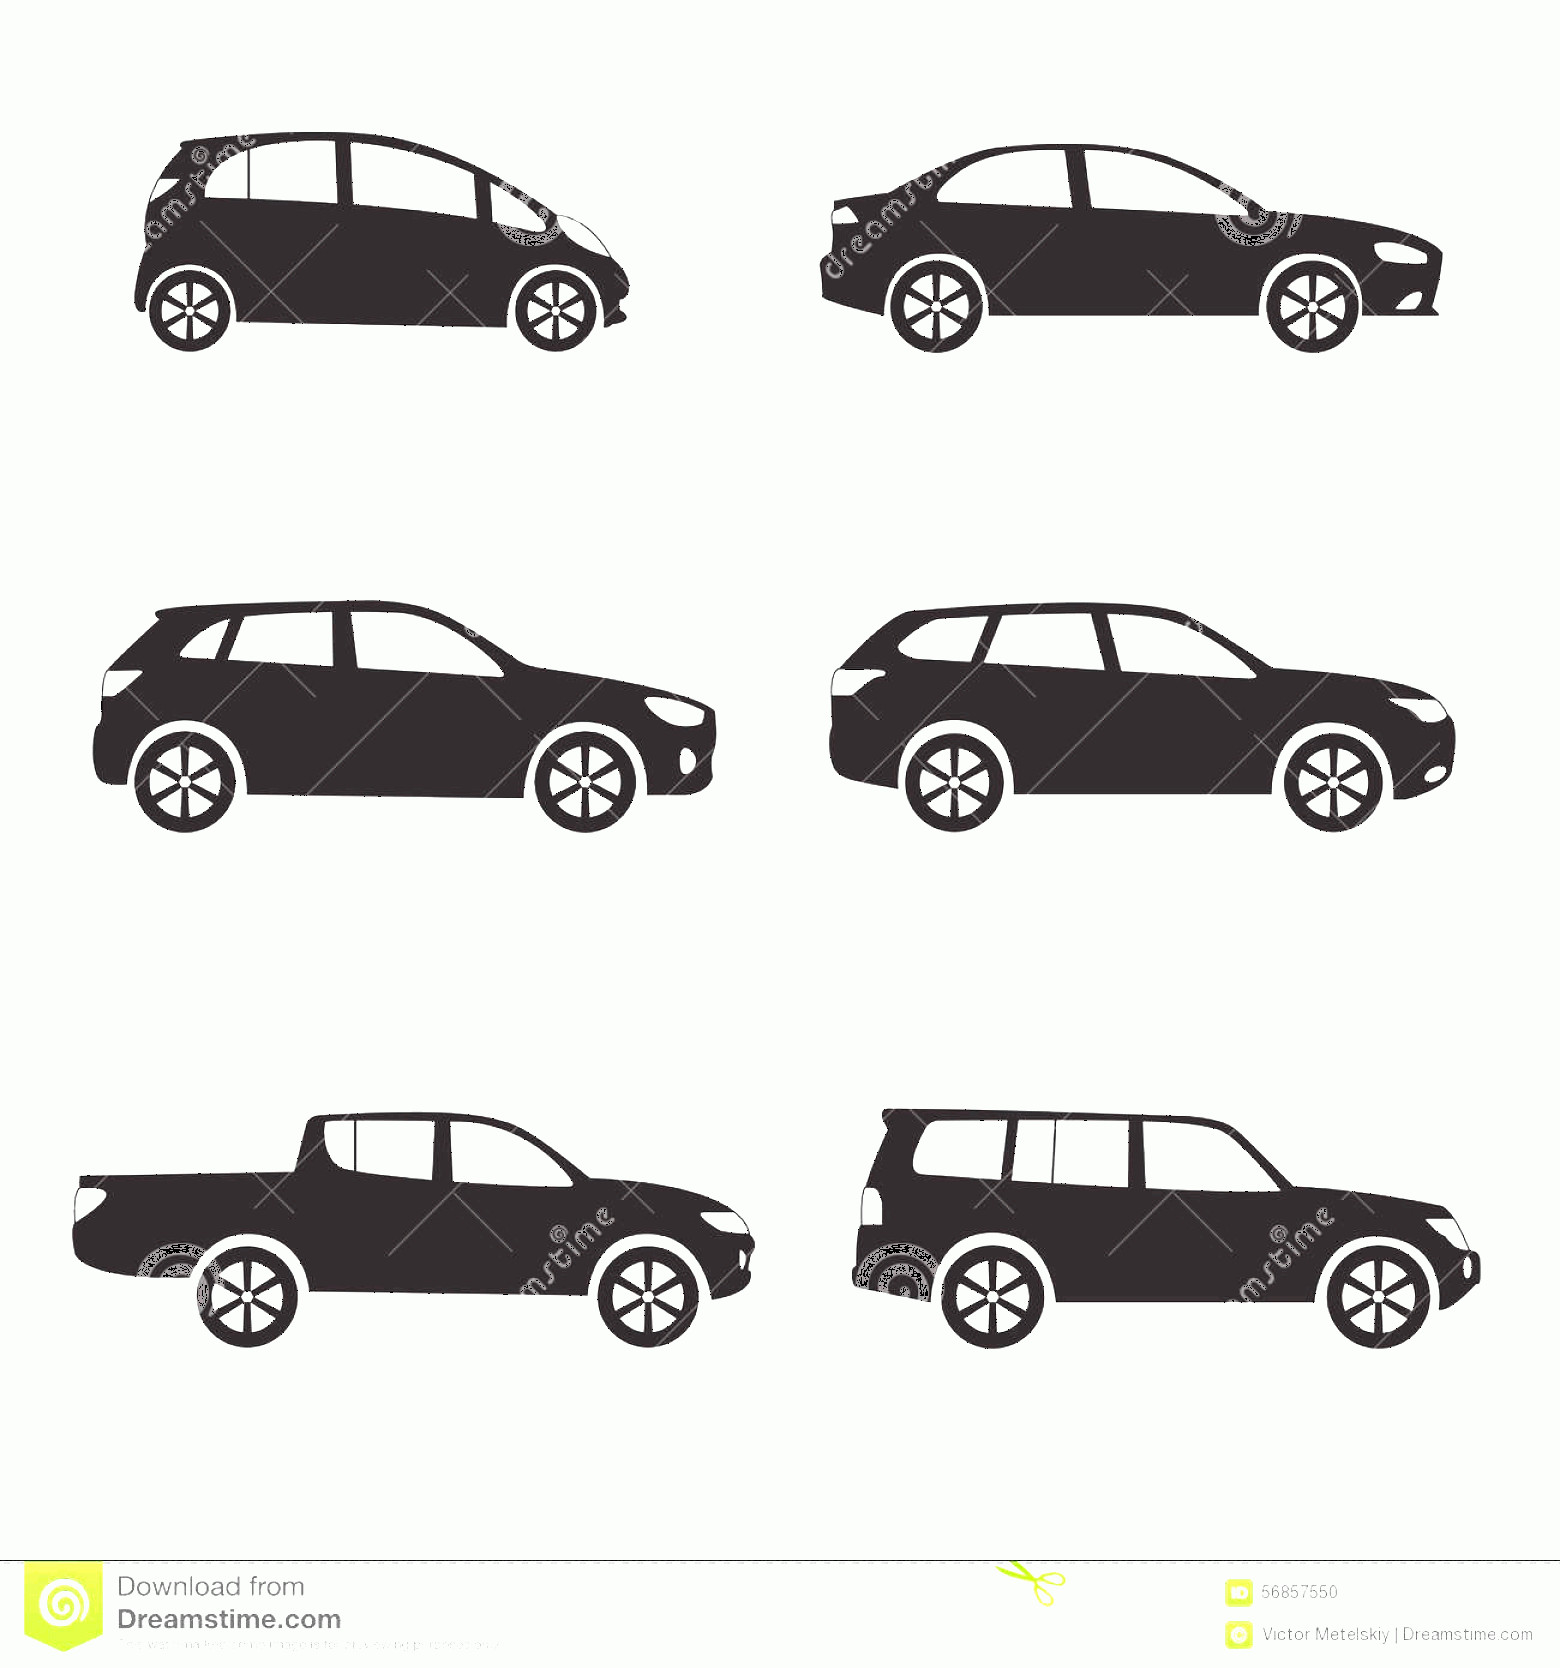 Vector Car: Stock Illustration Car Vehicle Icon Set Different Vector Car Form Cars Isolated White Background Illustration Image